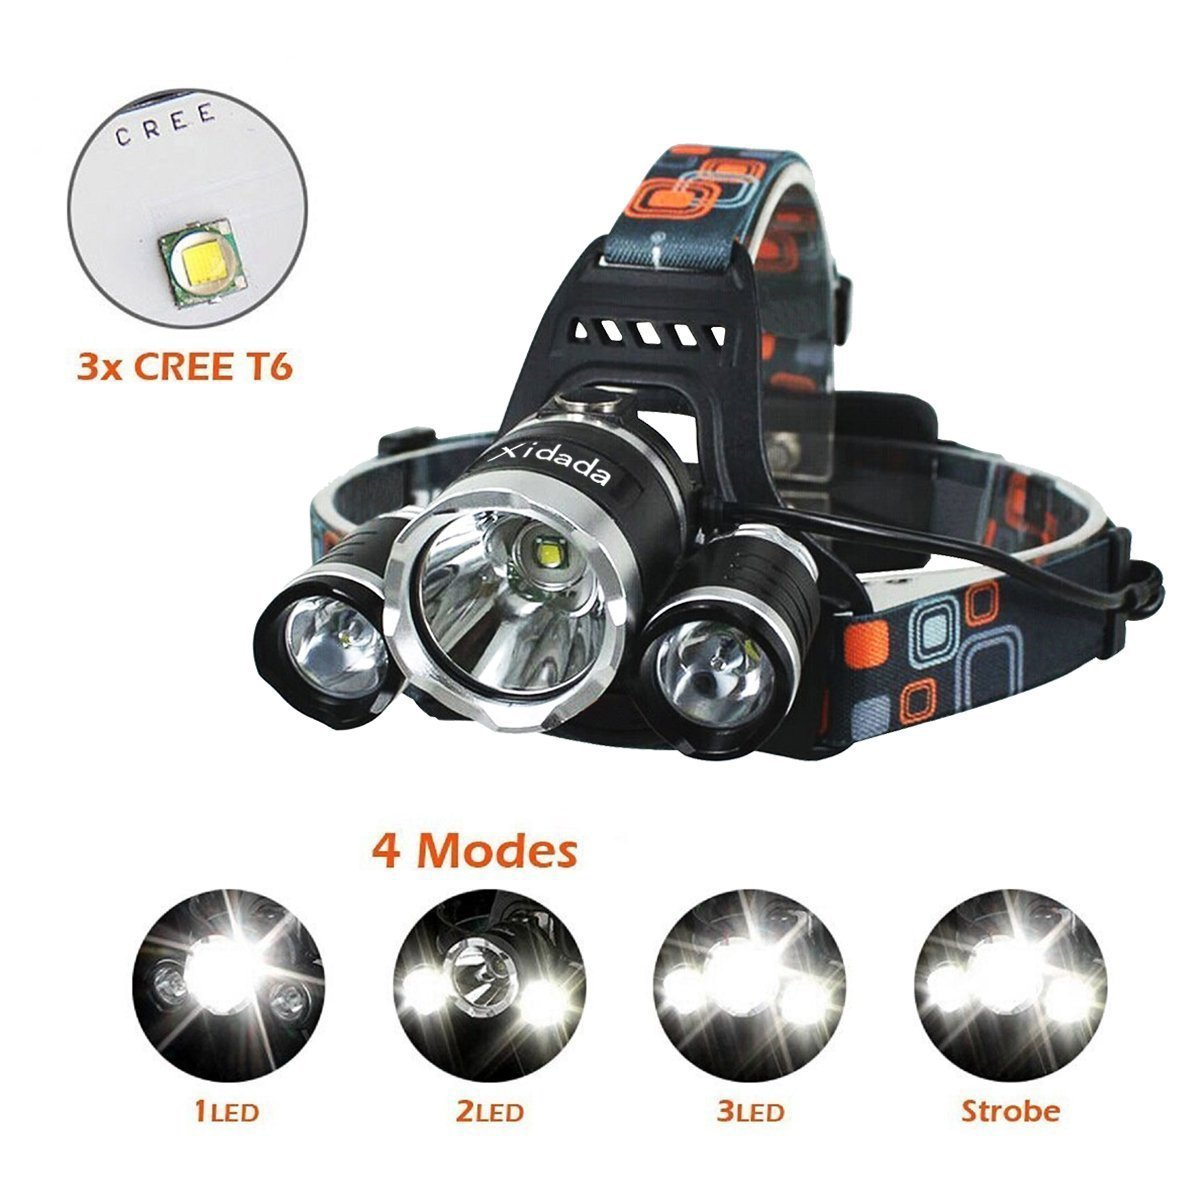 Headlamp 10000 Lumen,Headlight Ultra Brightest CREE LED Panasonic 18650 Batteries Best Waterproof Head Lights for Camping Running Hiking Fishing